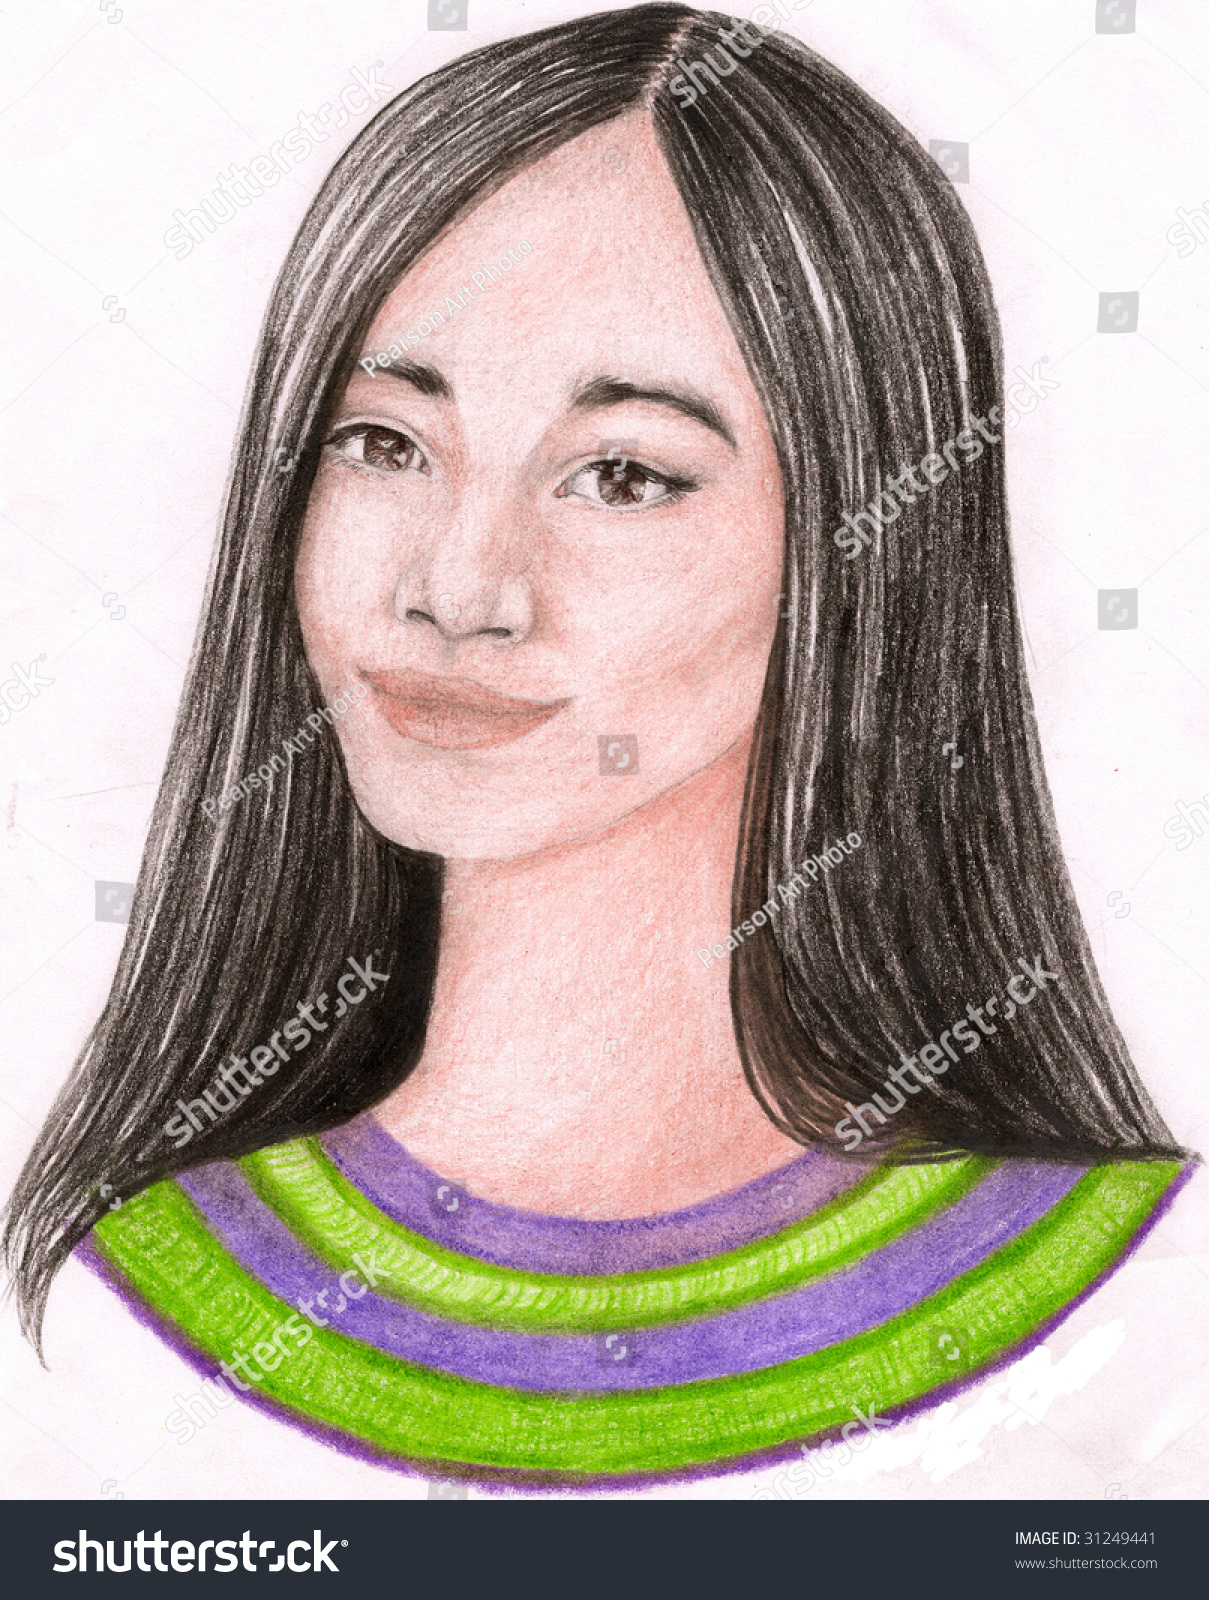 A colored pencil sketch of a pretty girl looking to one side with long black hair